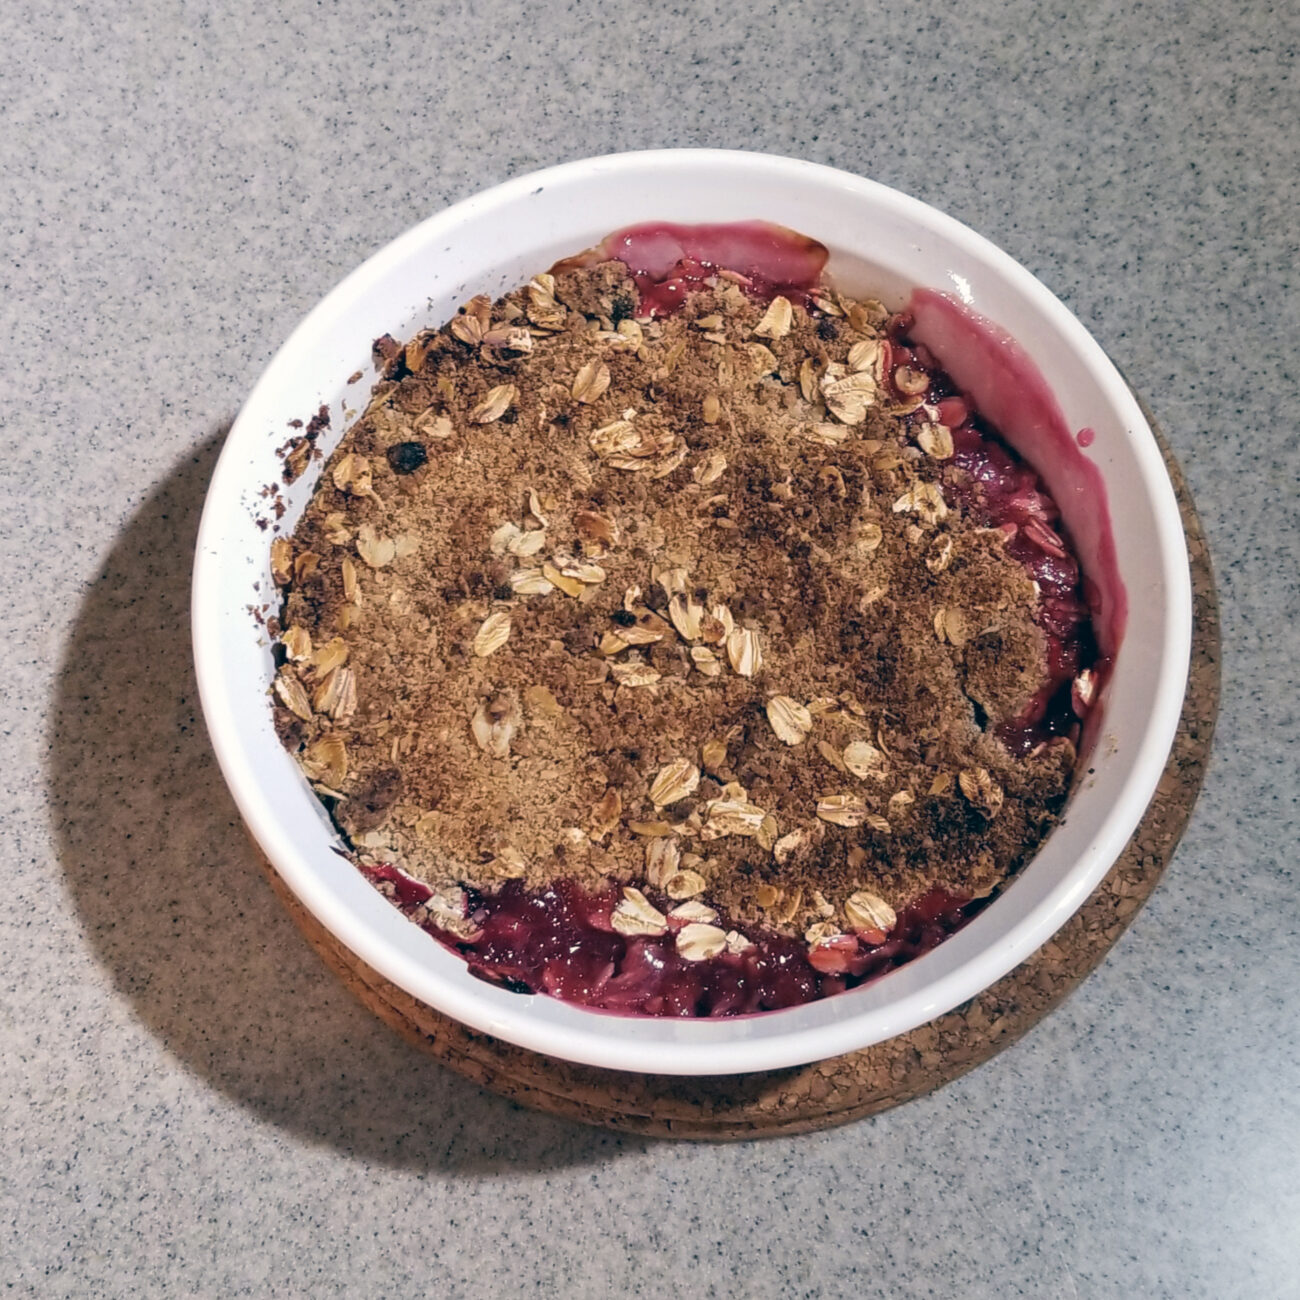 Gooseberry and Blackcurrant Crumble